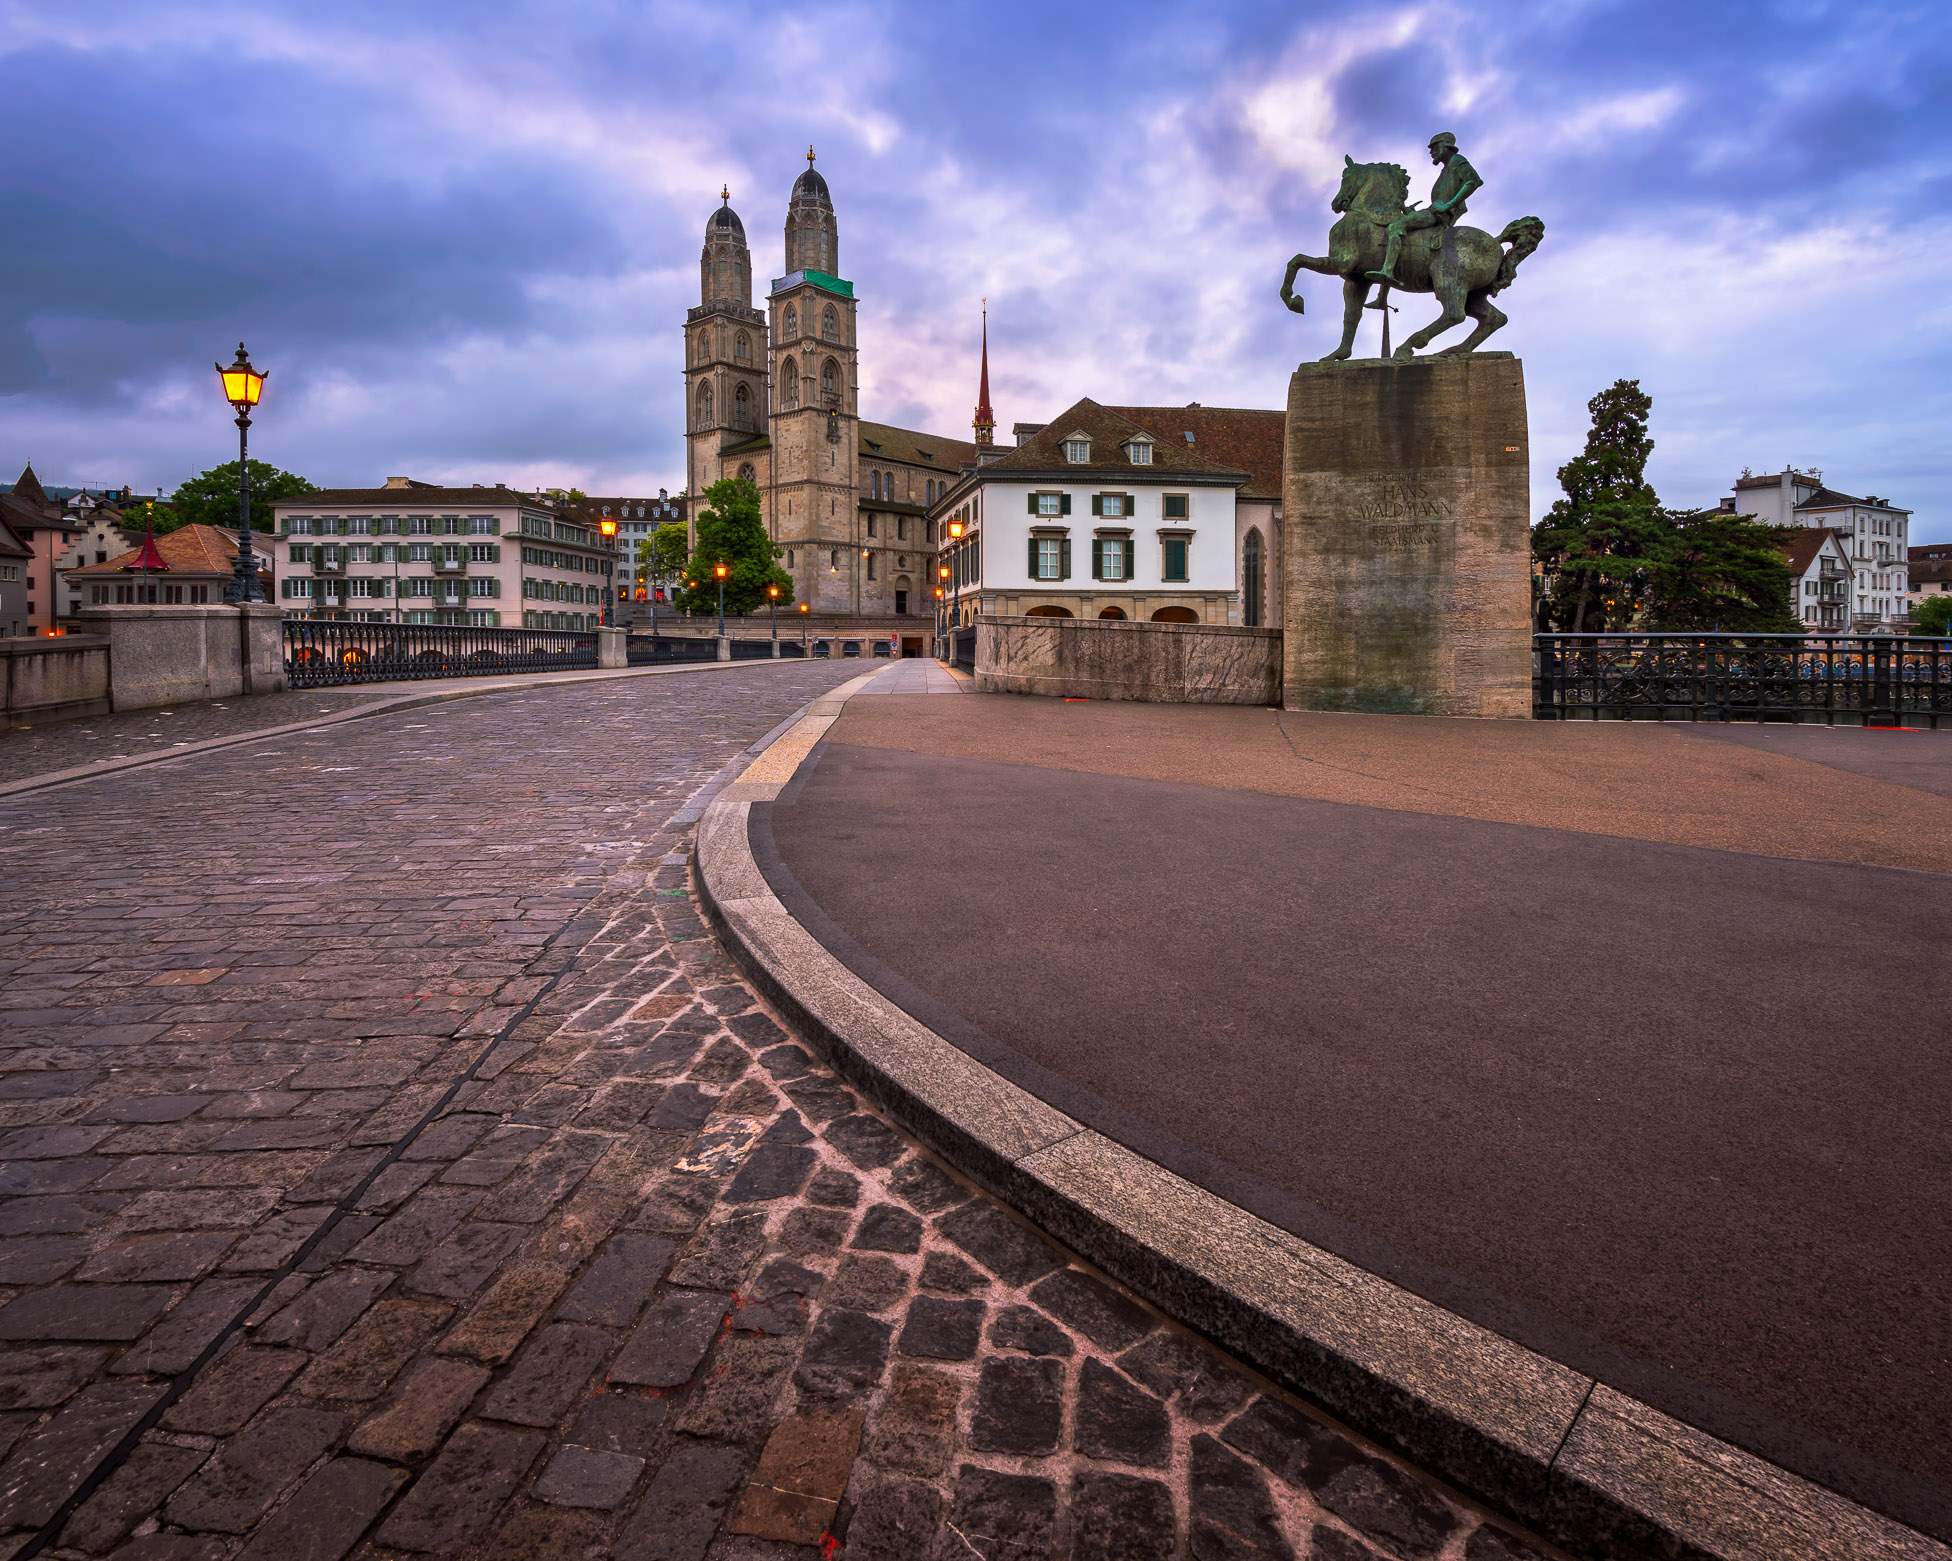 Grossmunster Church and Mayor Hans Waldmann Statue in the Morning, Zurich, Switzerland